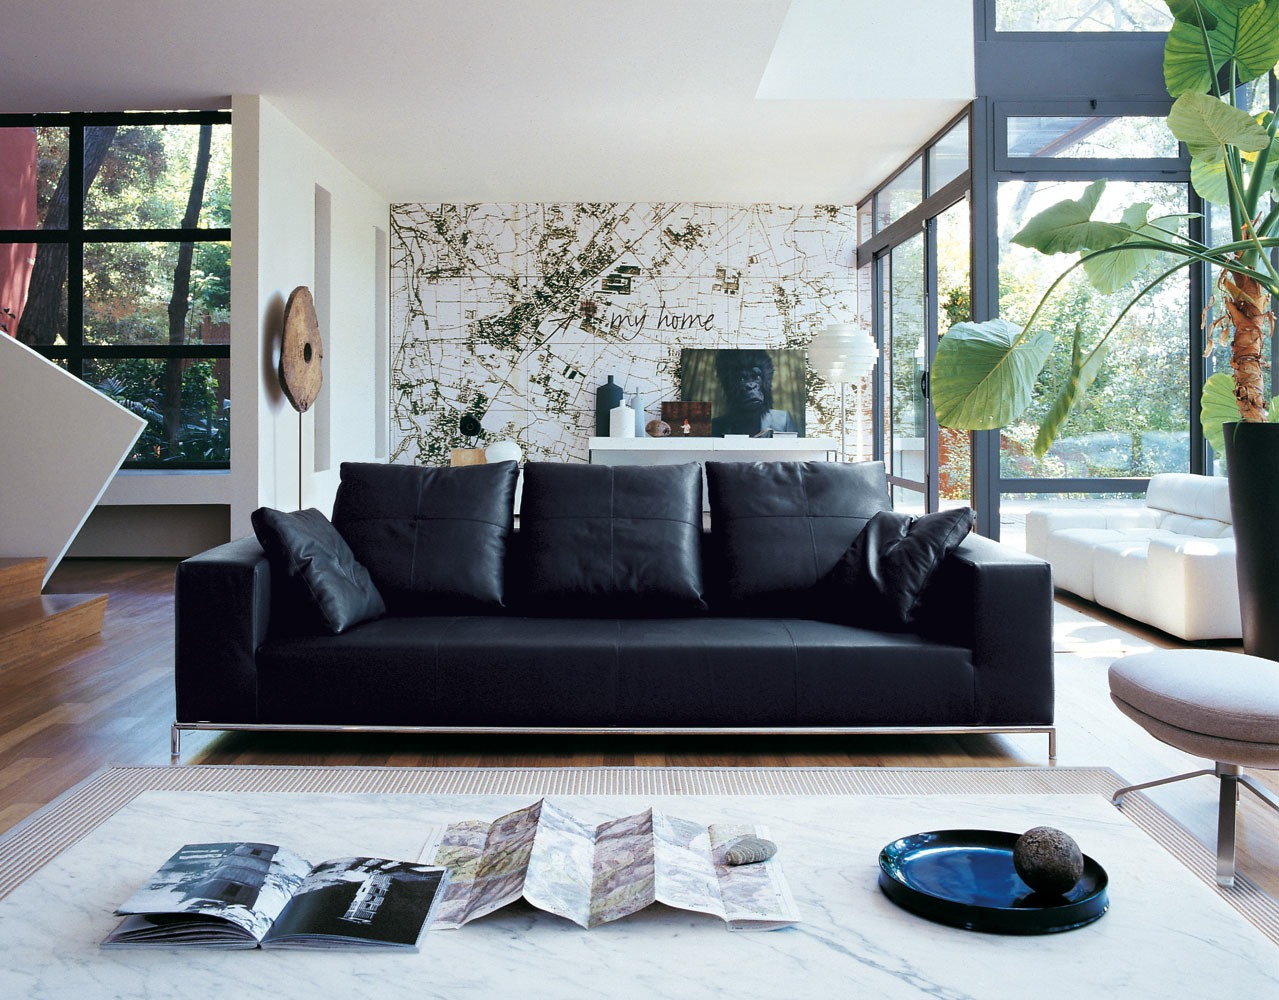 Black Living Room Furniture Decorating Ideas Black Leather Sofa Interior Design Ideas